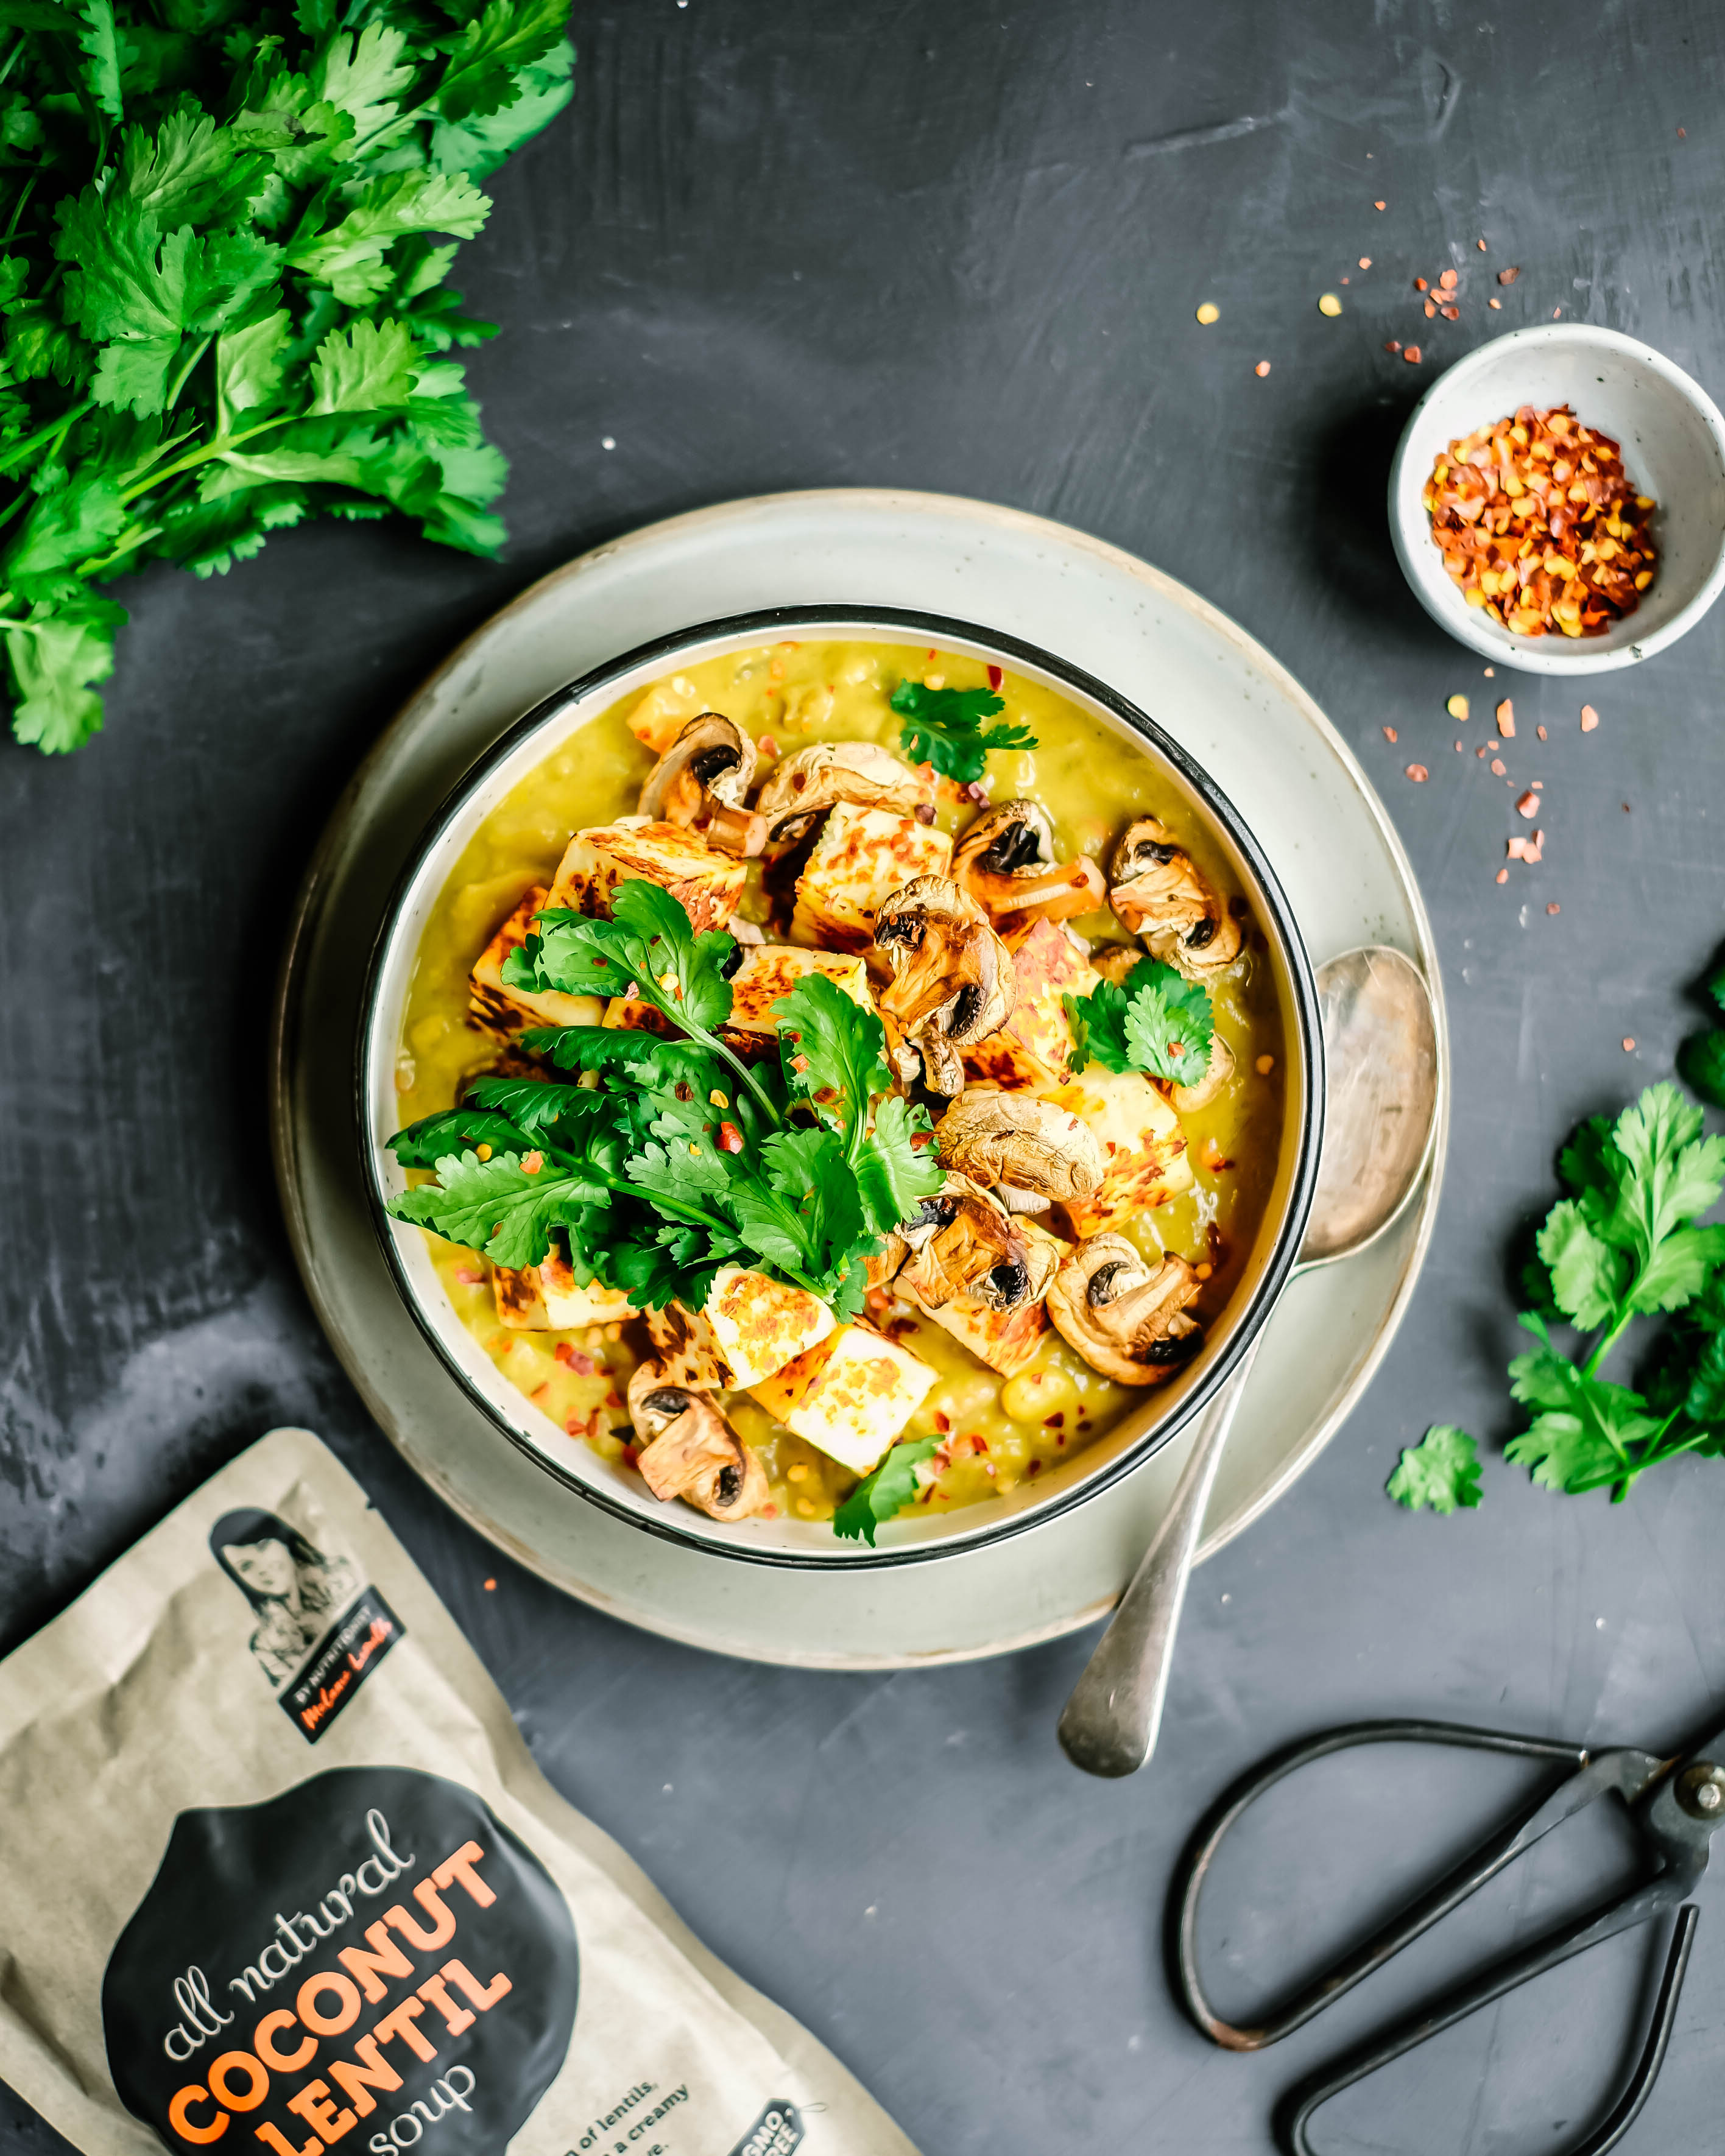 COCONUT LENTIL PANEER CURRY WITH MUSHROOMS